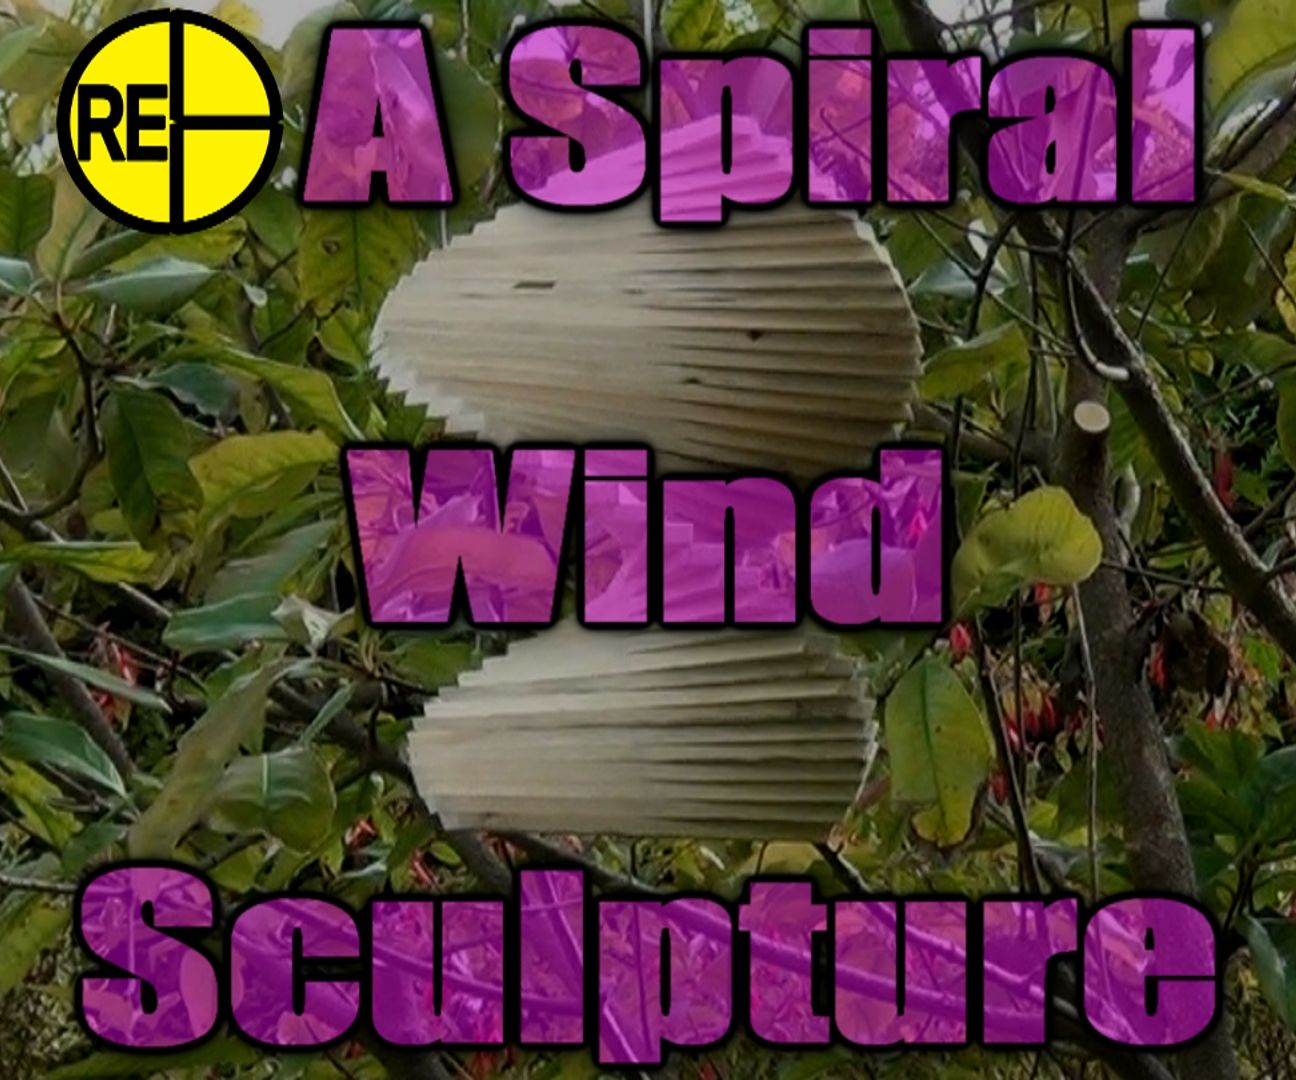 How to Make a Spiral Wind Sculpture